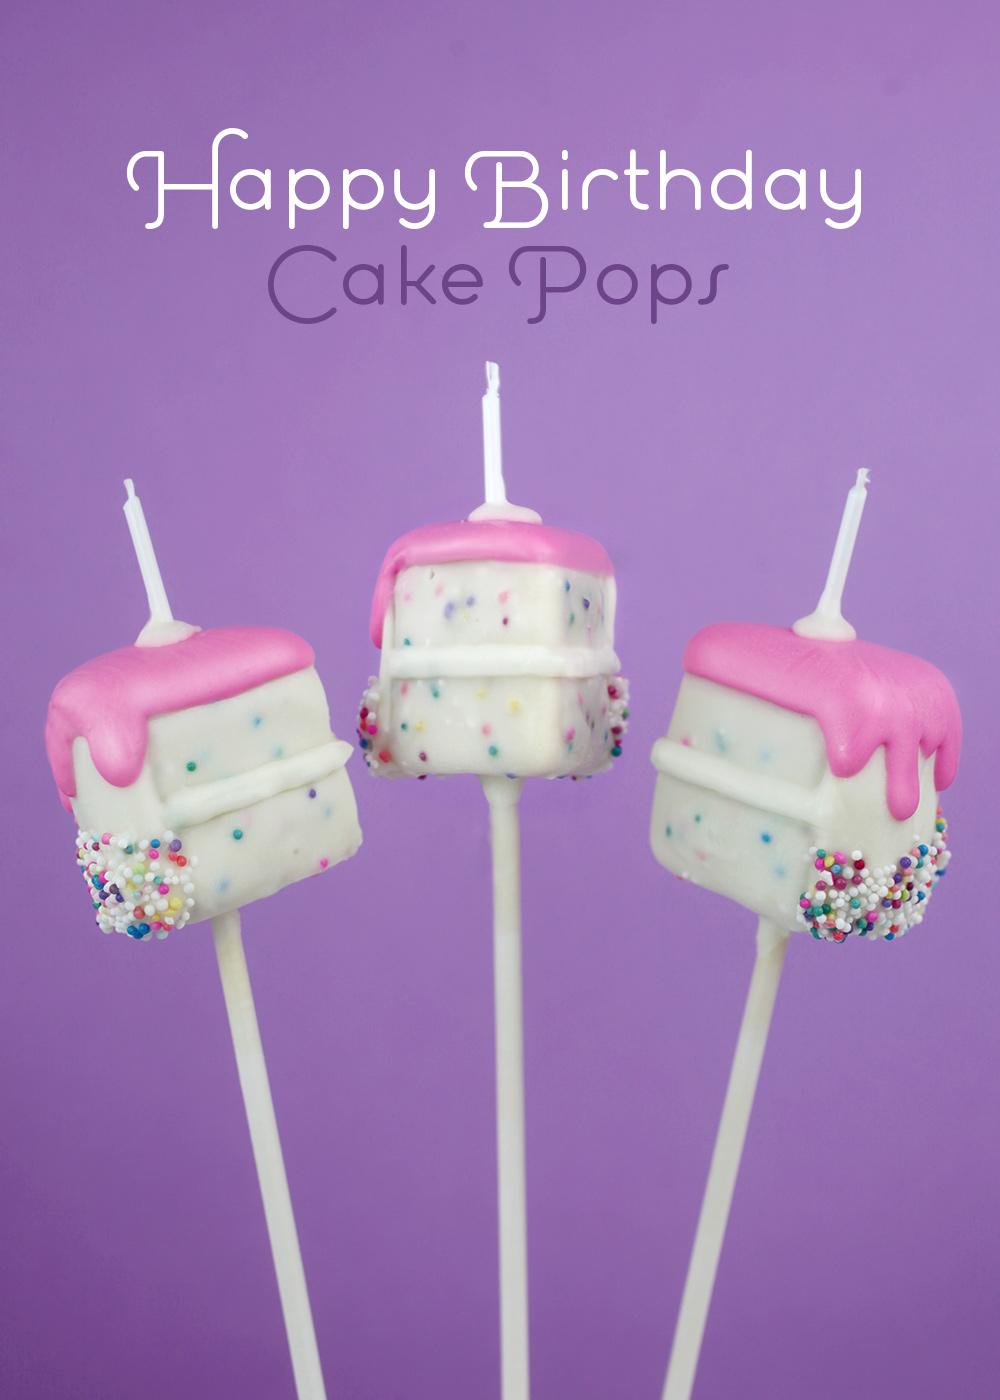 Happy Birthday Cake Pops bakerellacom